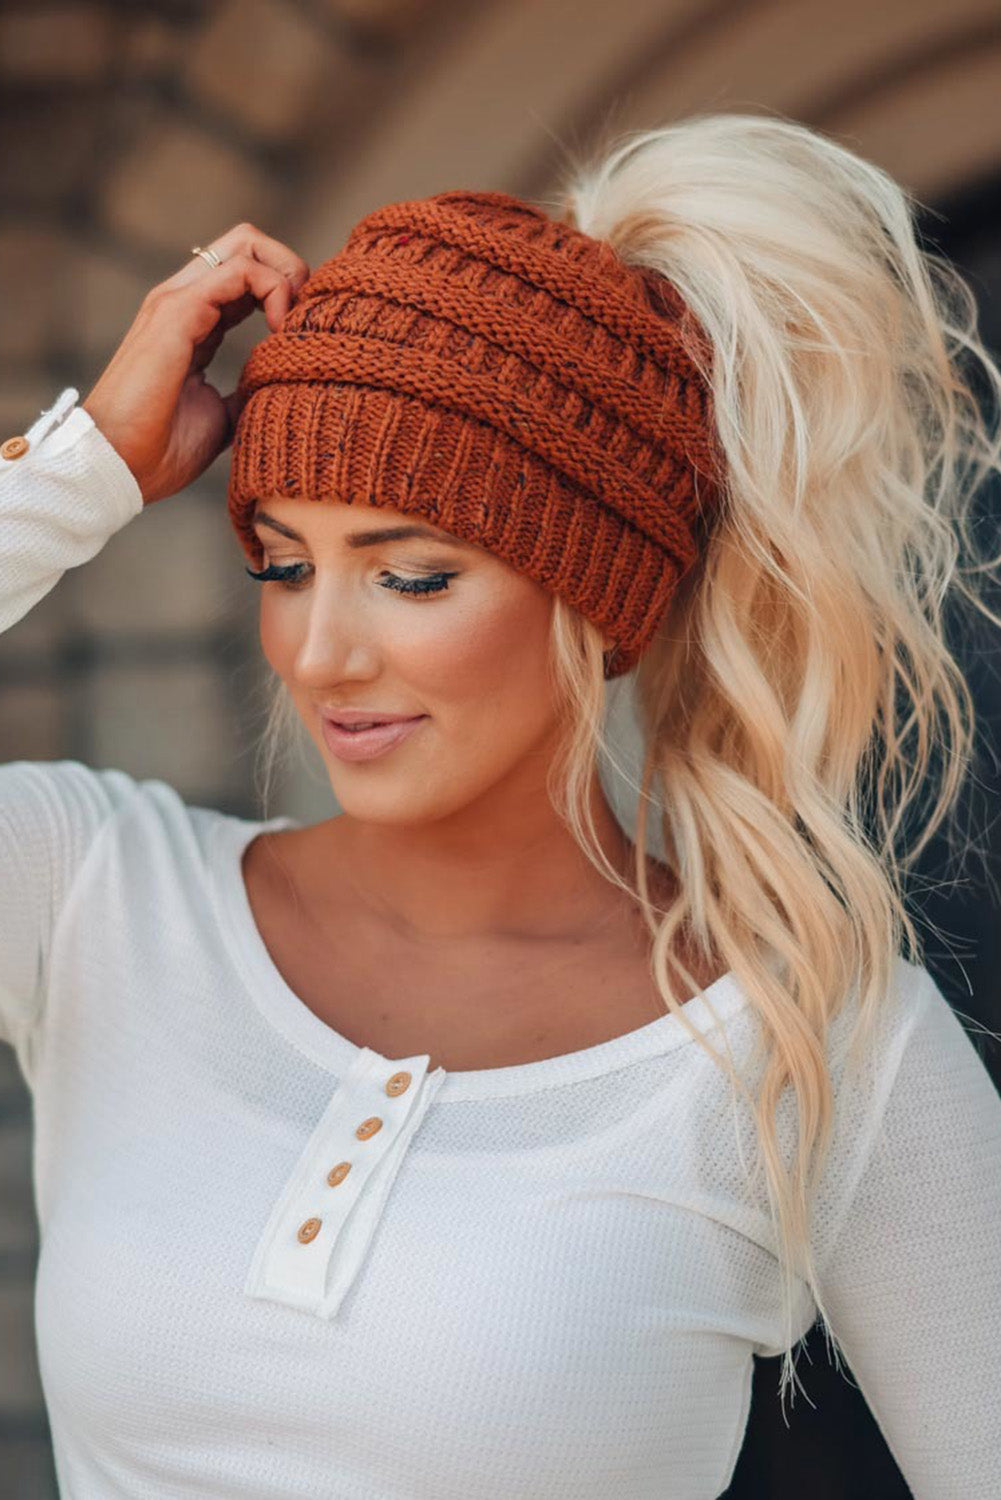 Brown Winter Knitted Ponytail Beanie Hats & Caps Discount Designer Fashion Clothes Shoes Bags Women Men Kids Children Black Owned Business